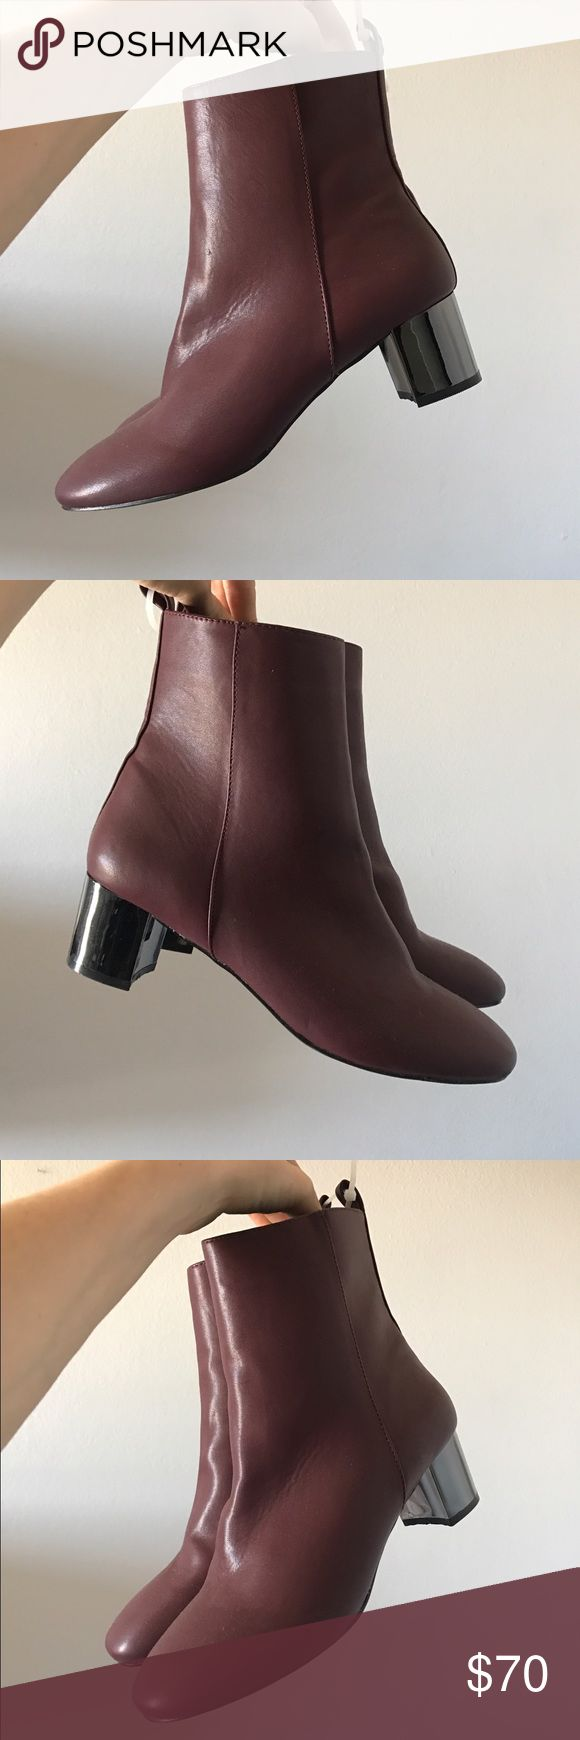 Topshop Mirror Heel Boots These super rad, retro inspired boots have a low mirrored block heel and an awesome design that will look amazing with just about anything! This burgundy colour is surprisingly versatile! Marked Euro size 40, which would be US size 10 but fits a 9 perfect. Brand new never worn! One of their more recent styles. Still has a zip tie attached. Topshop Shoes Ankle Boots & Booties